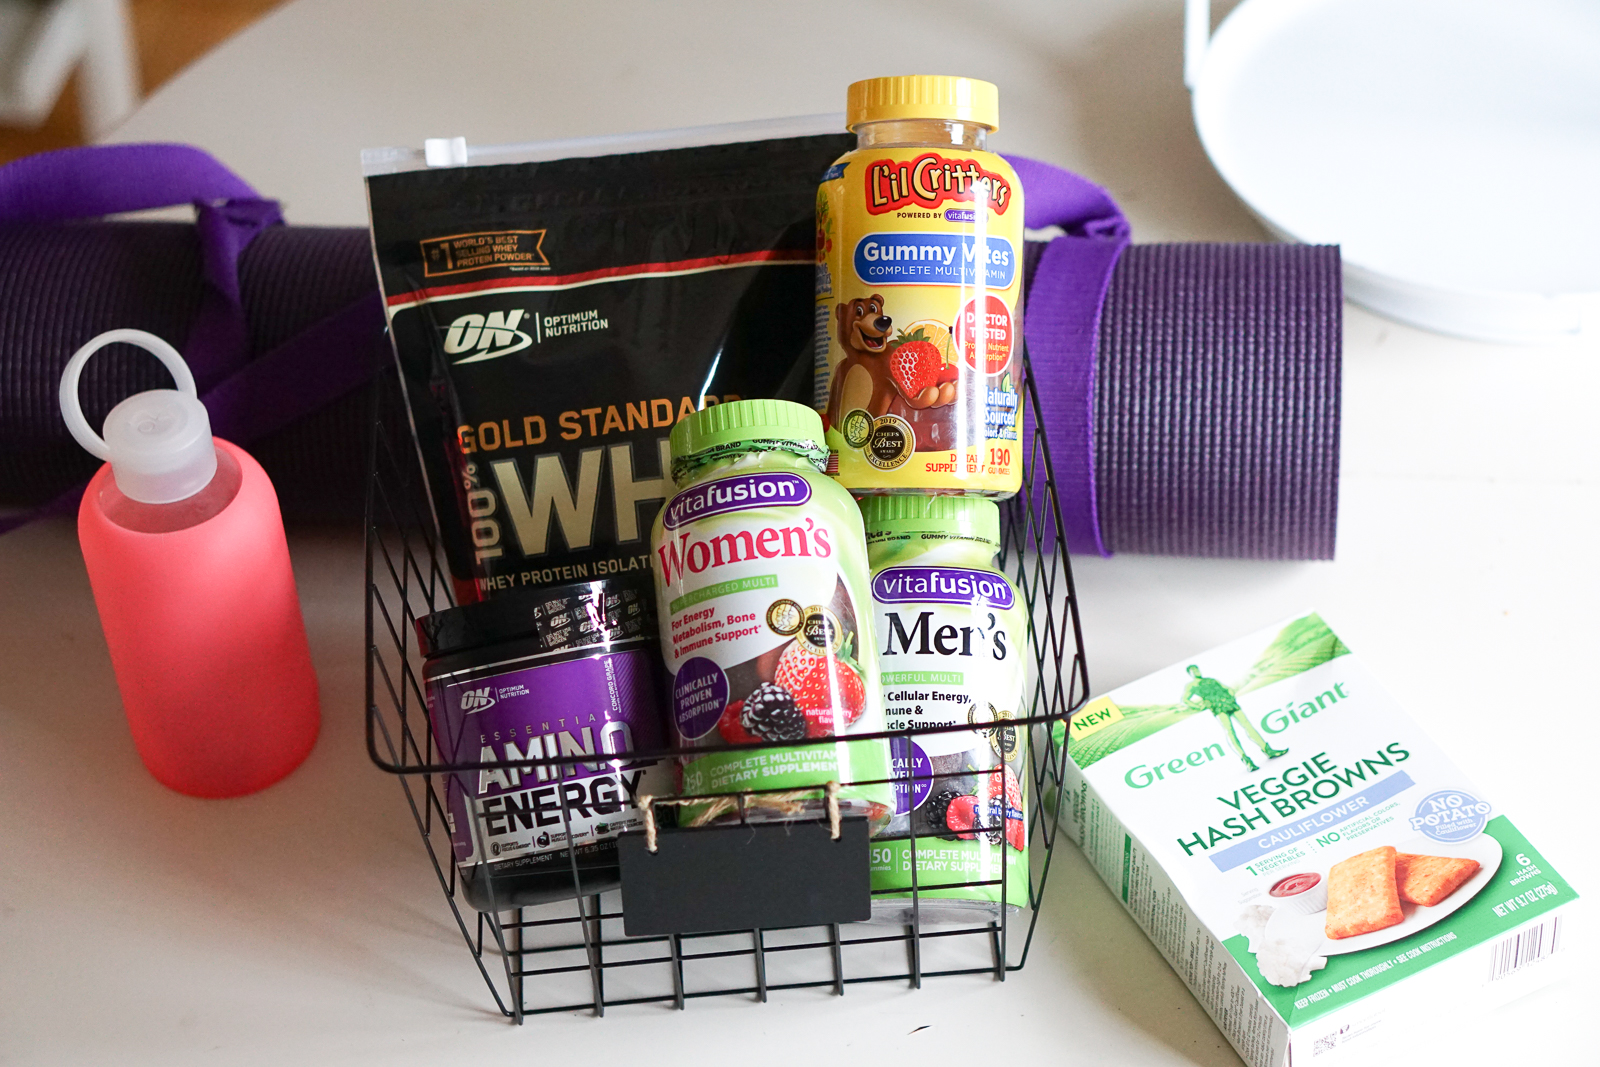 Healthy Habits for the Best Year Ever! Family Health and Wellness Tips - Our New Years Resolutions plan with vitafusion, Green Giant and Optimum Nutrition